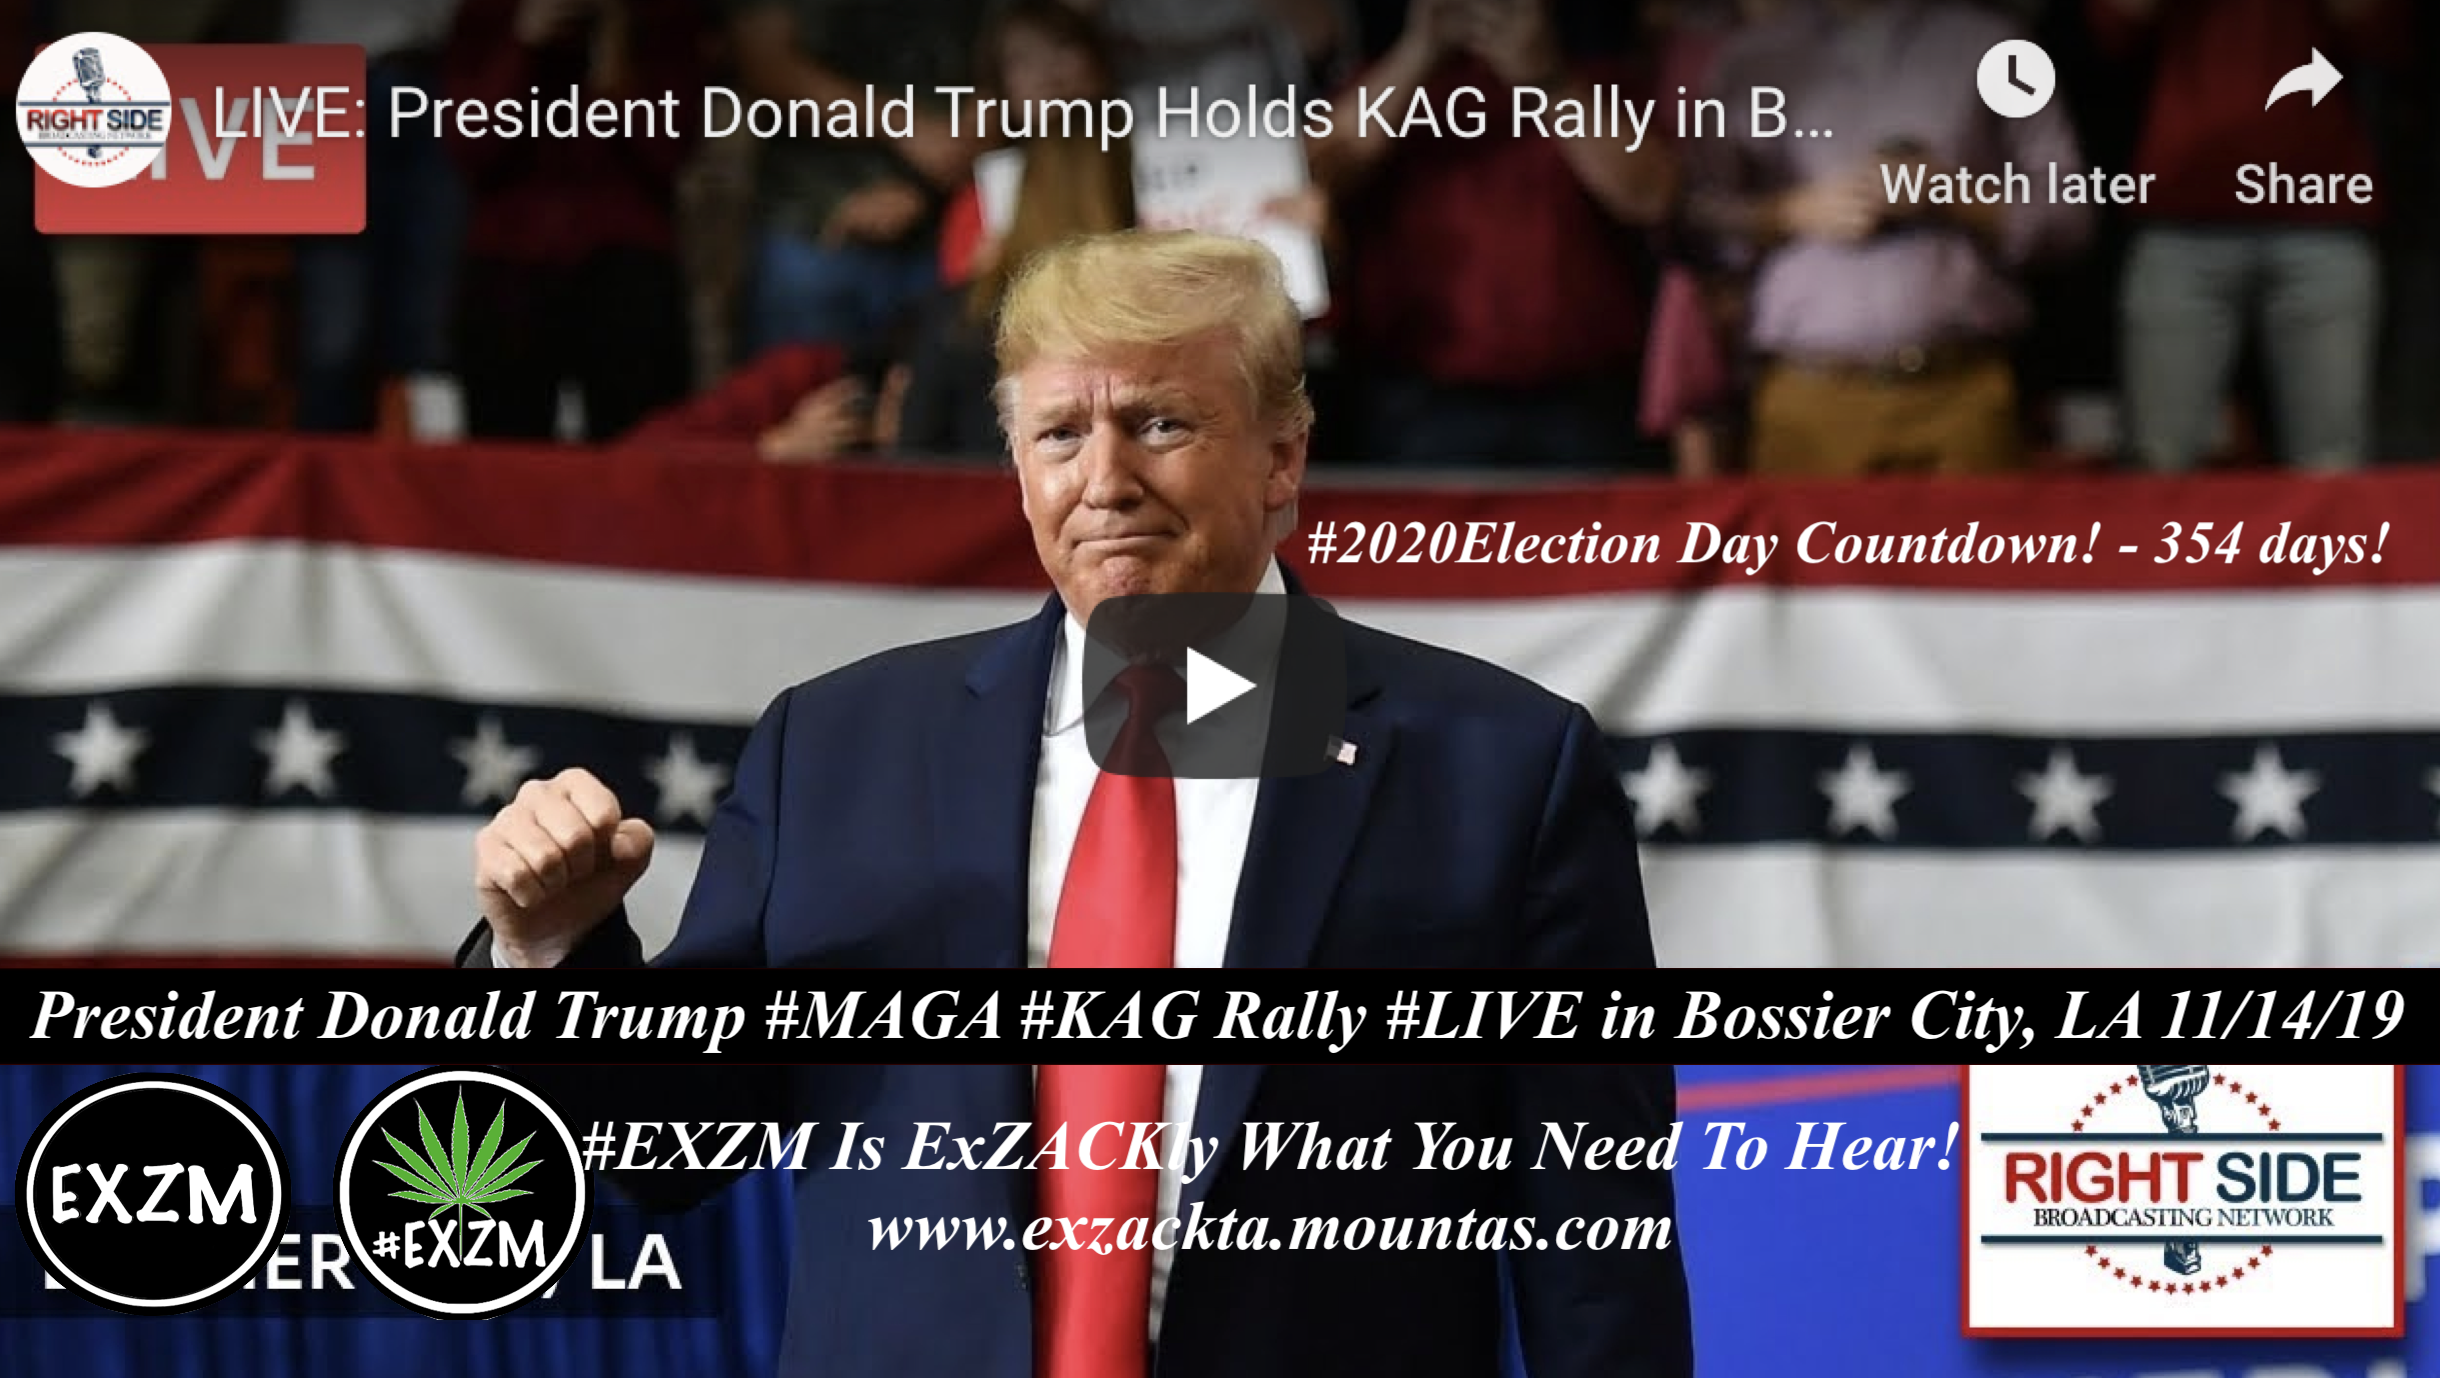 EXZM President Trump KAG Rally Bossier City, LA 11 14 2019